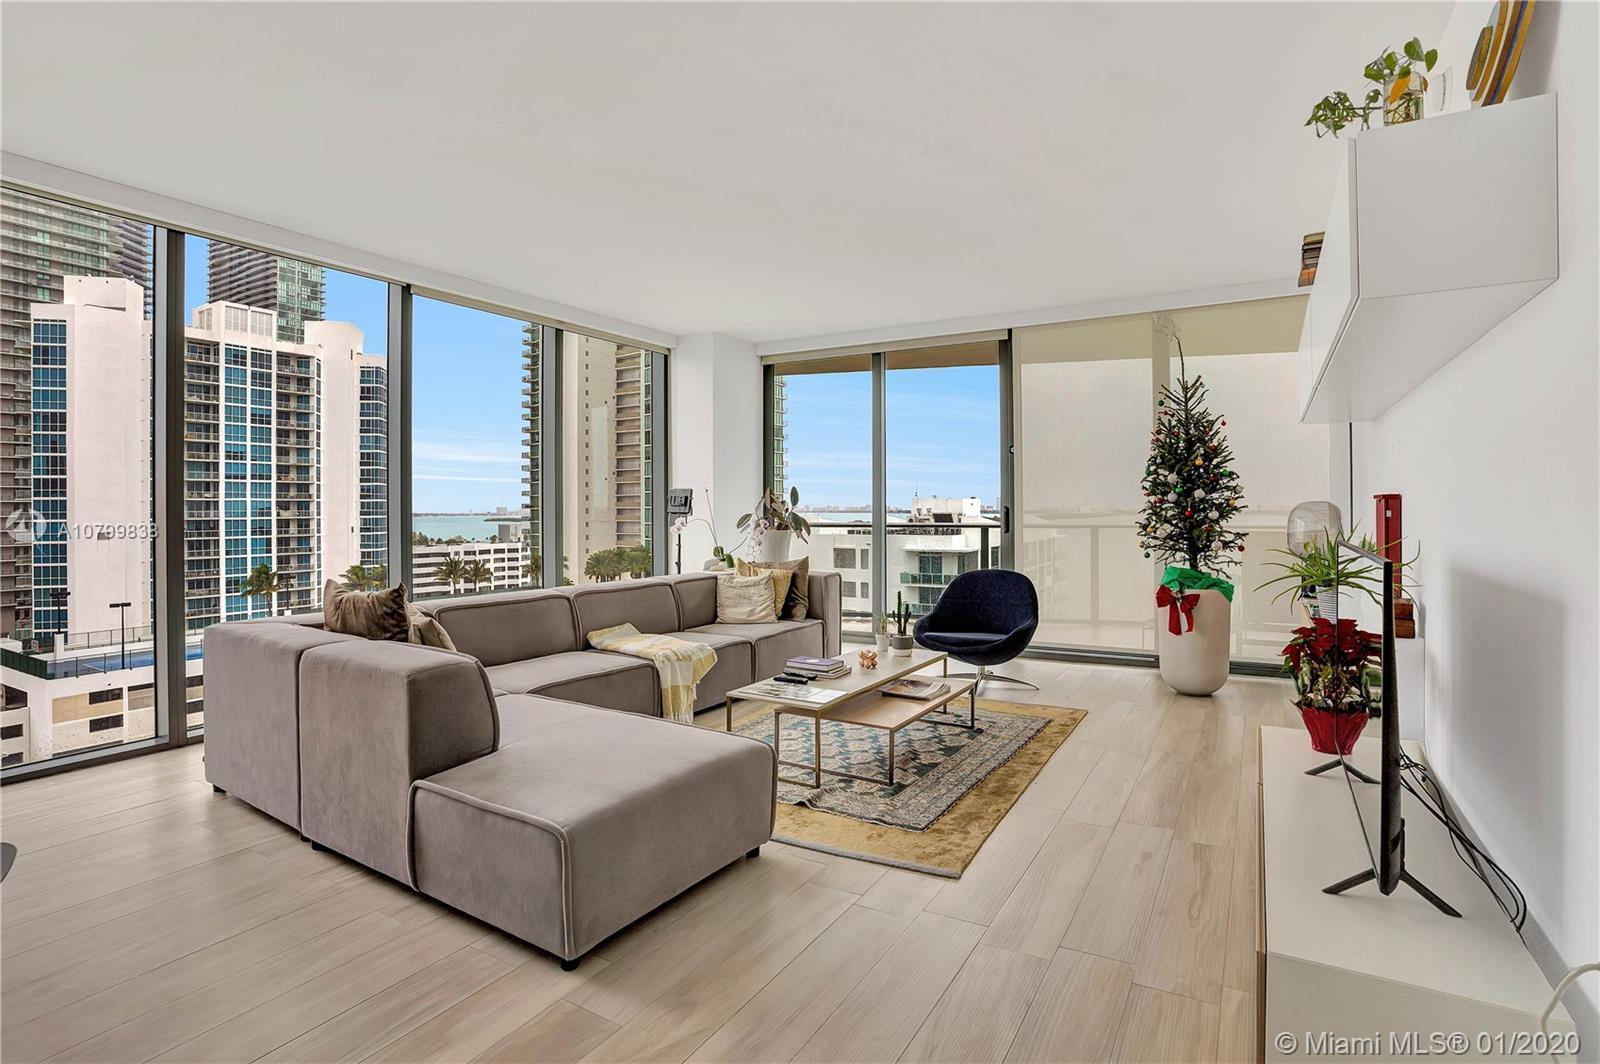 Stunning corner unit at the desirable Icon Bay with spectacular city and bay views. This furnished 2